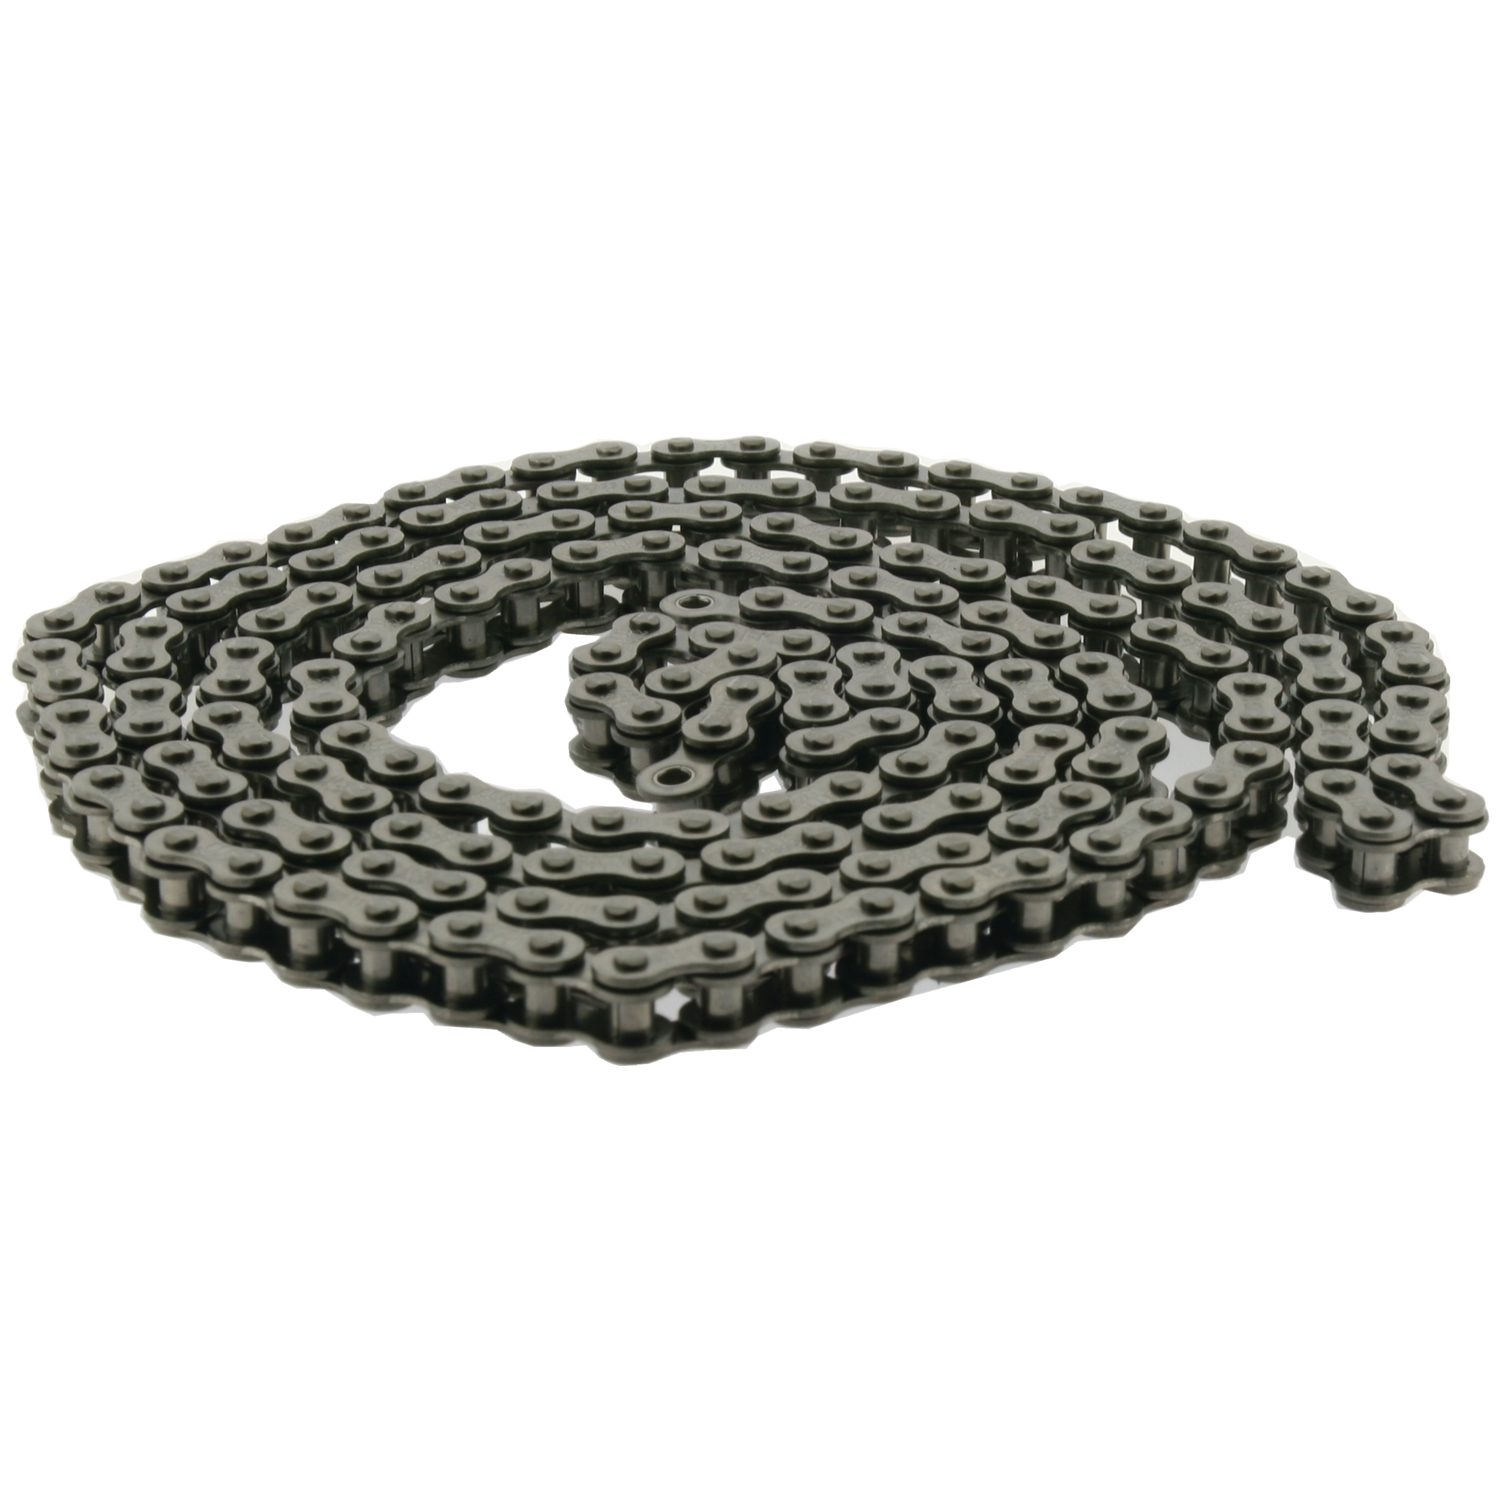 R1300 - Stainless Steel Link Chains